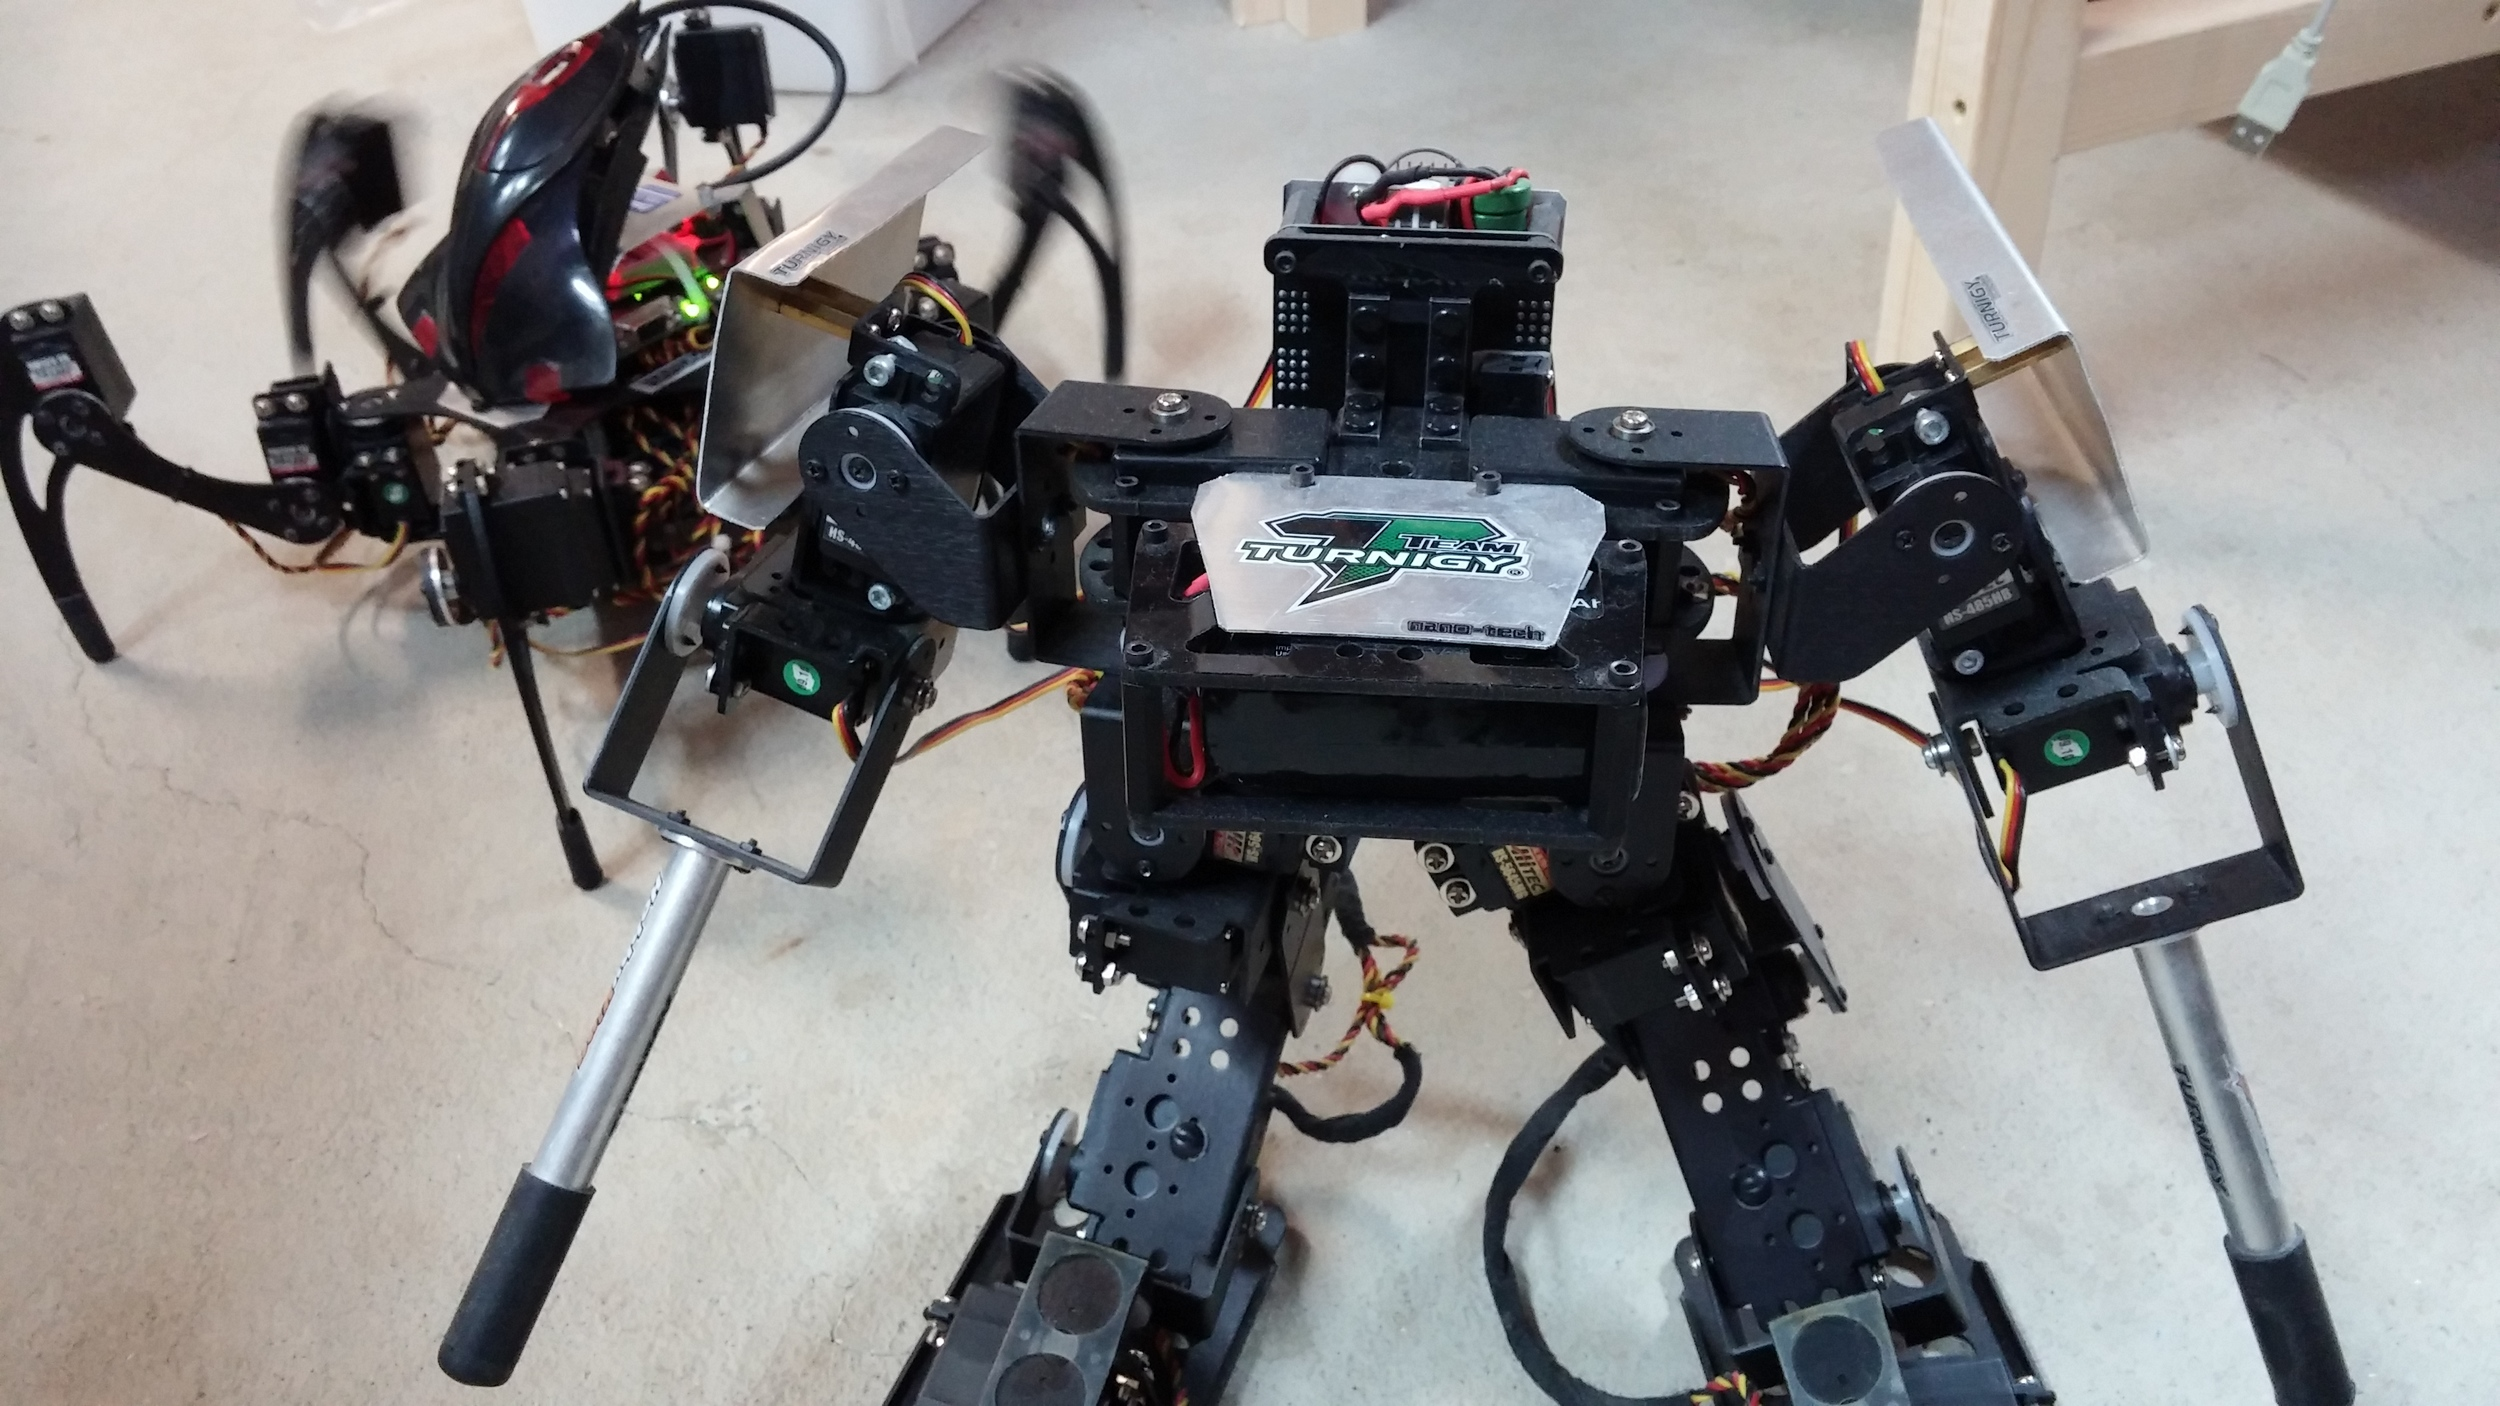 Biped & Hexapod modified from Lynxmotion Robotics with arduino core.